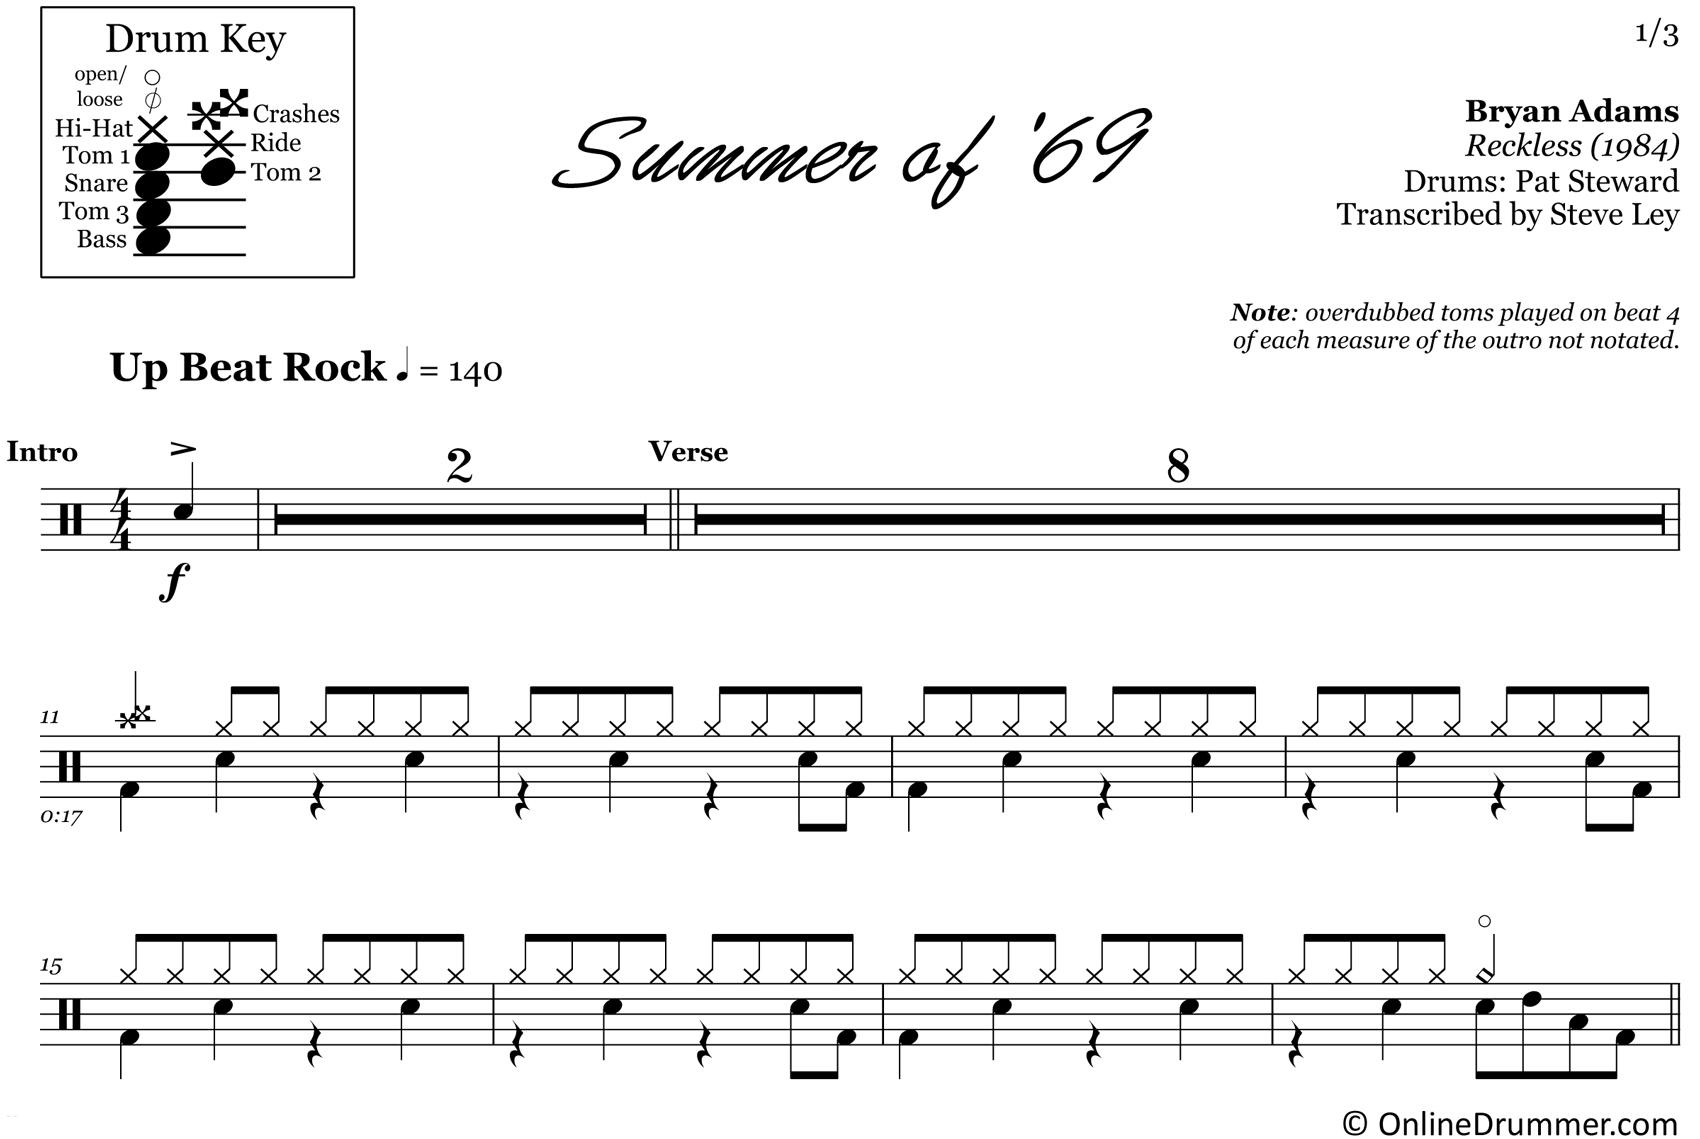 Summer of 69 - Bryan Adams - Drum Sheet Music